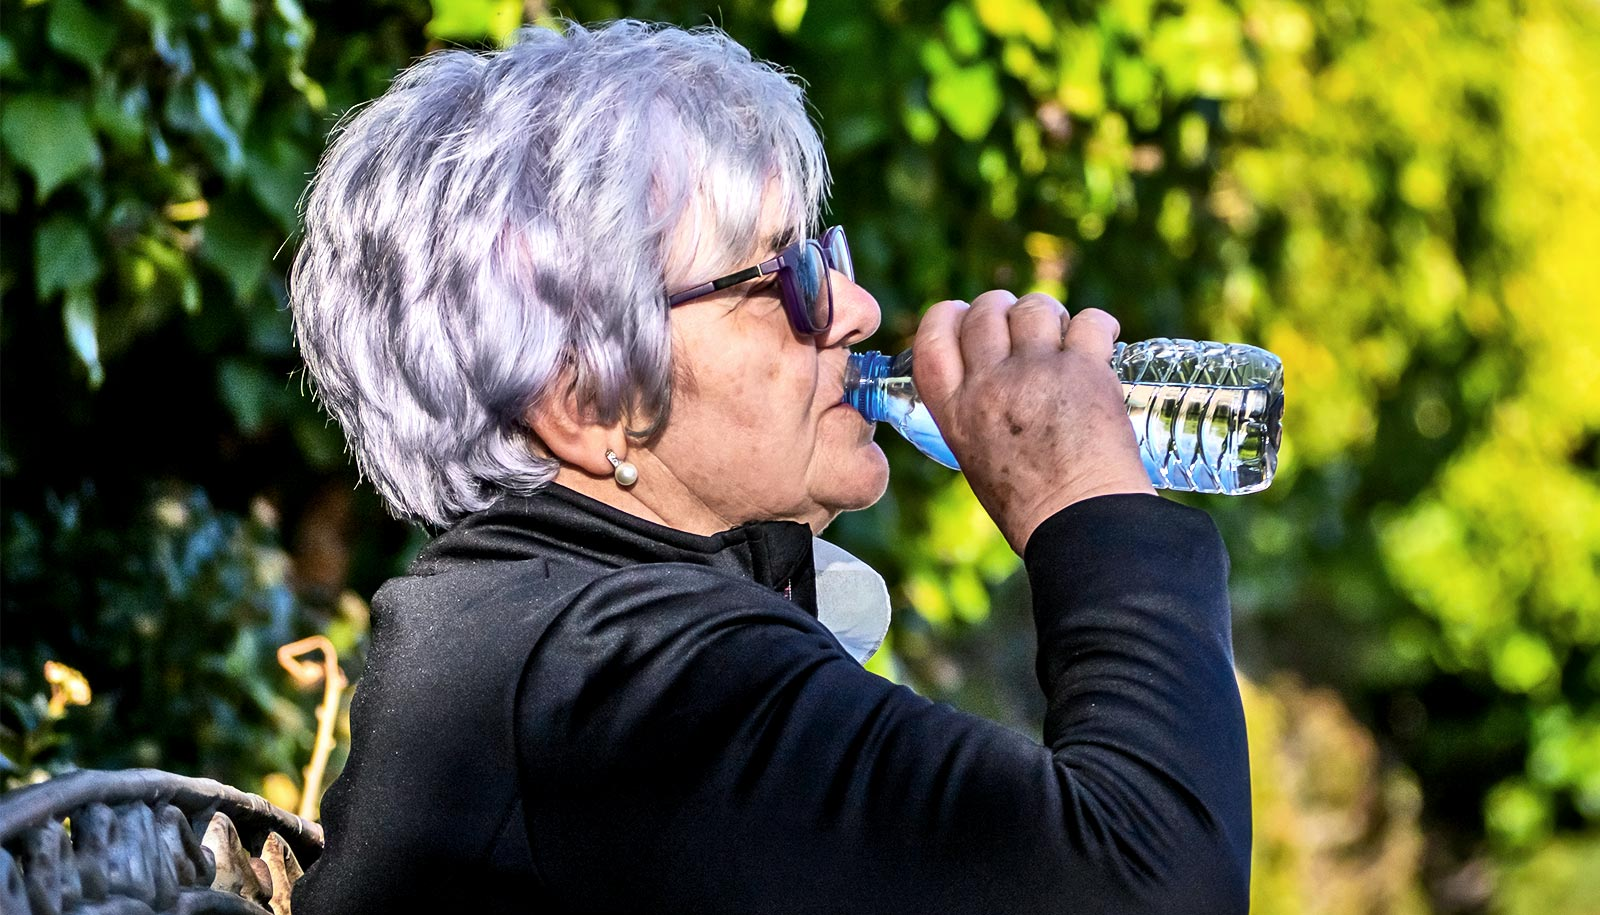 Too little (or too much) water may affect older women's cognition